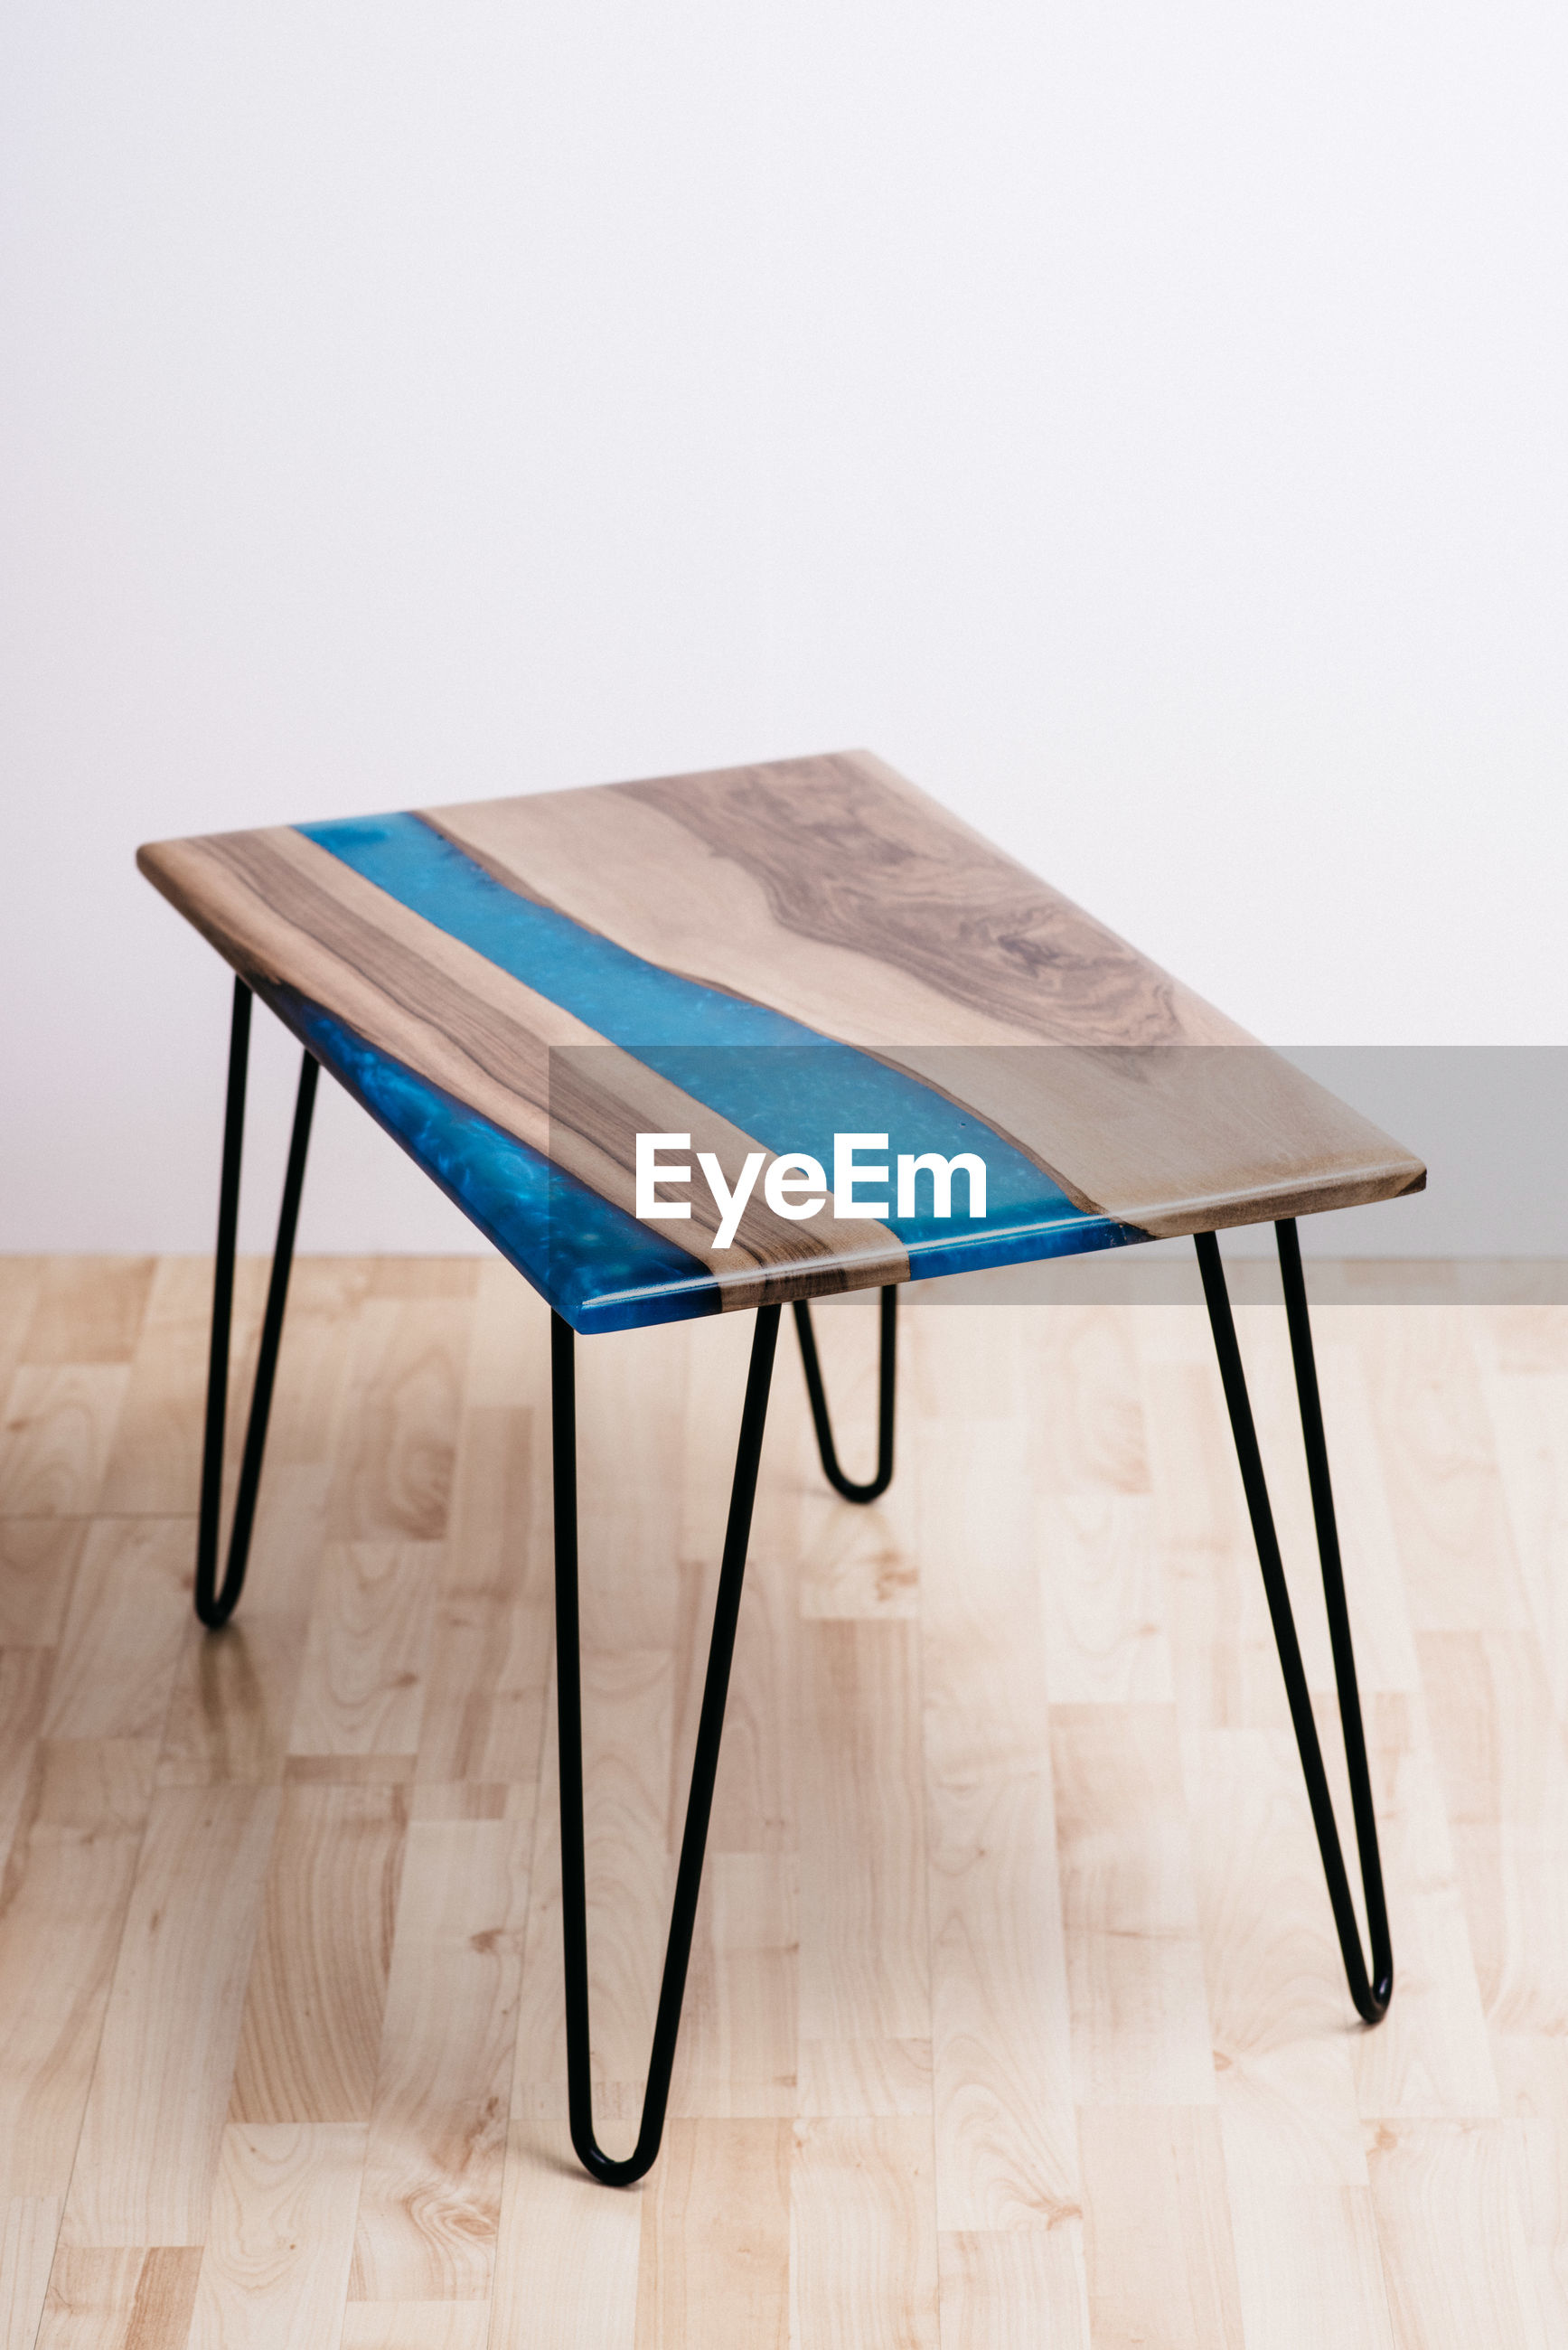 EMPTY CHAIR ON TABLE AGAINST BLUE WALL